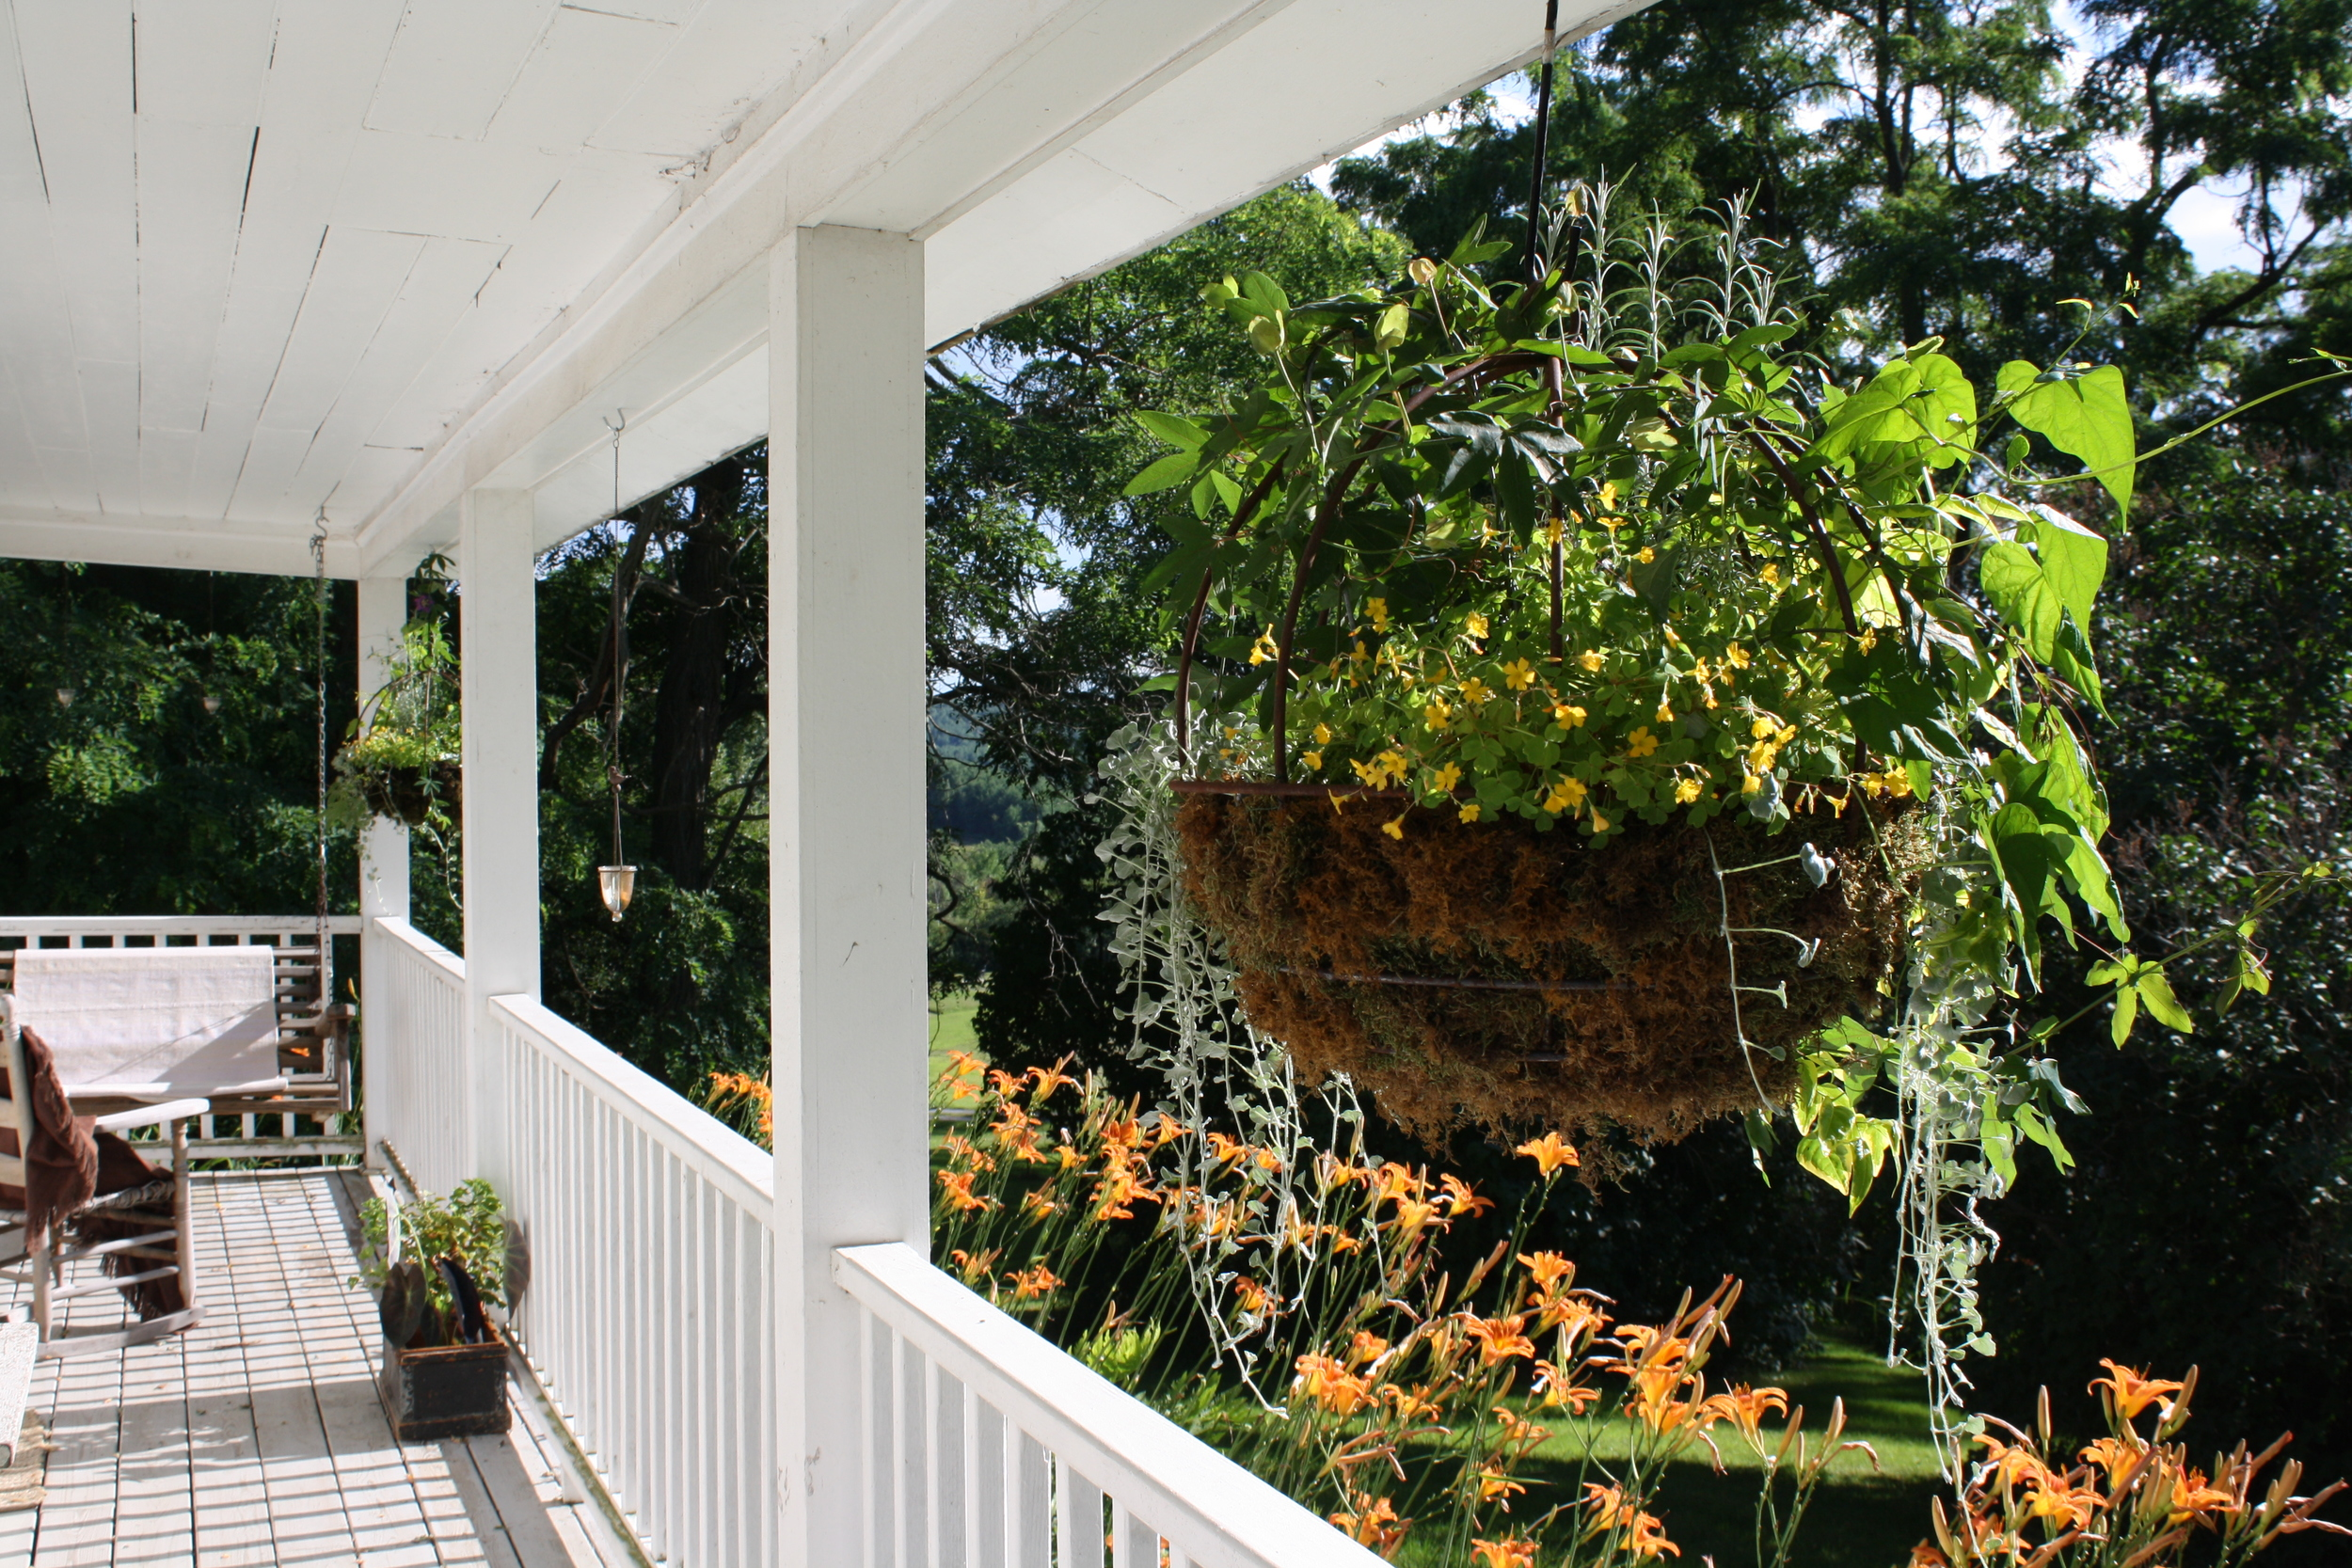 hanging baskets with dichondra, moonflower, passionflower, solanum jasmoides, oxalis, ornamental curry